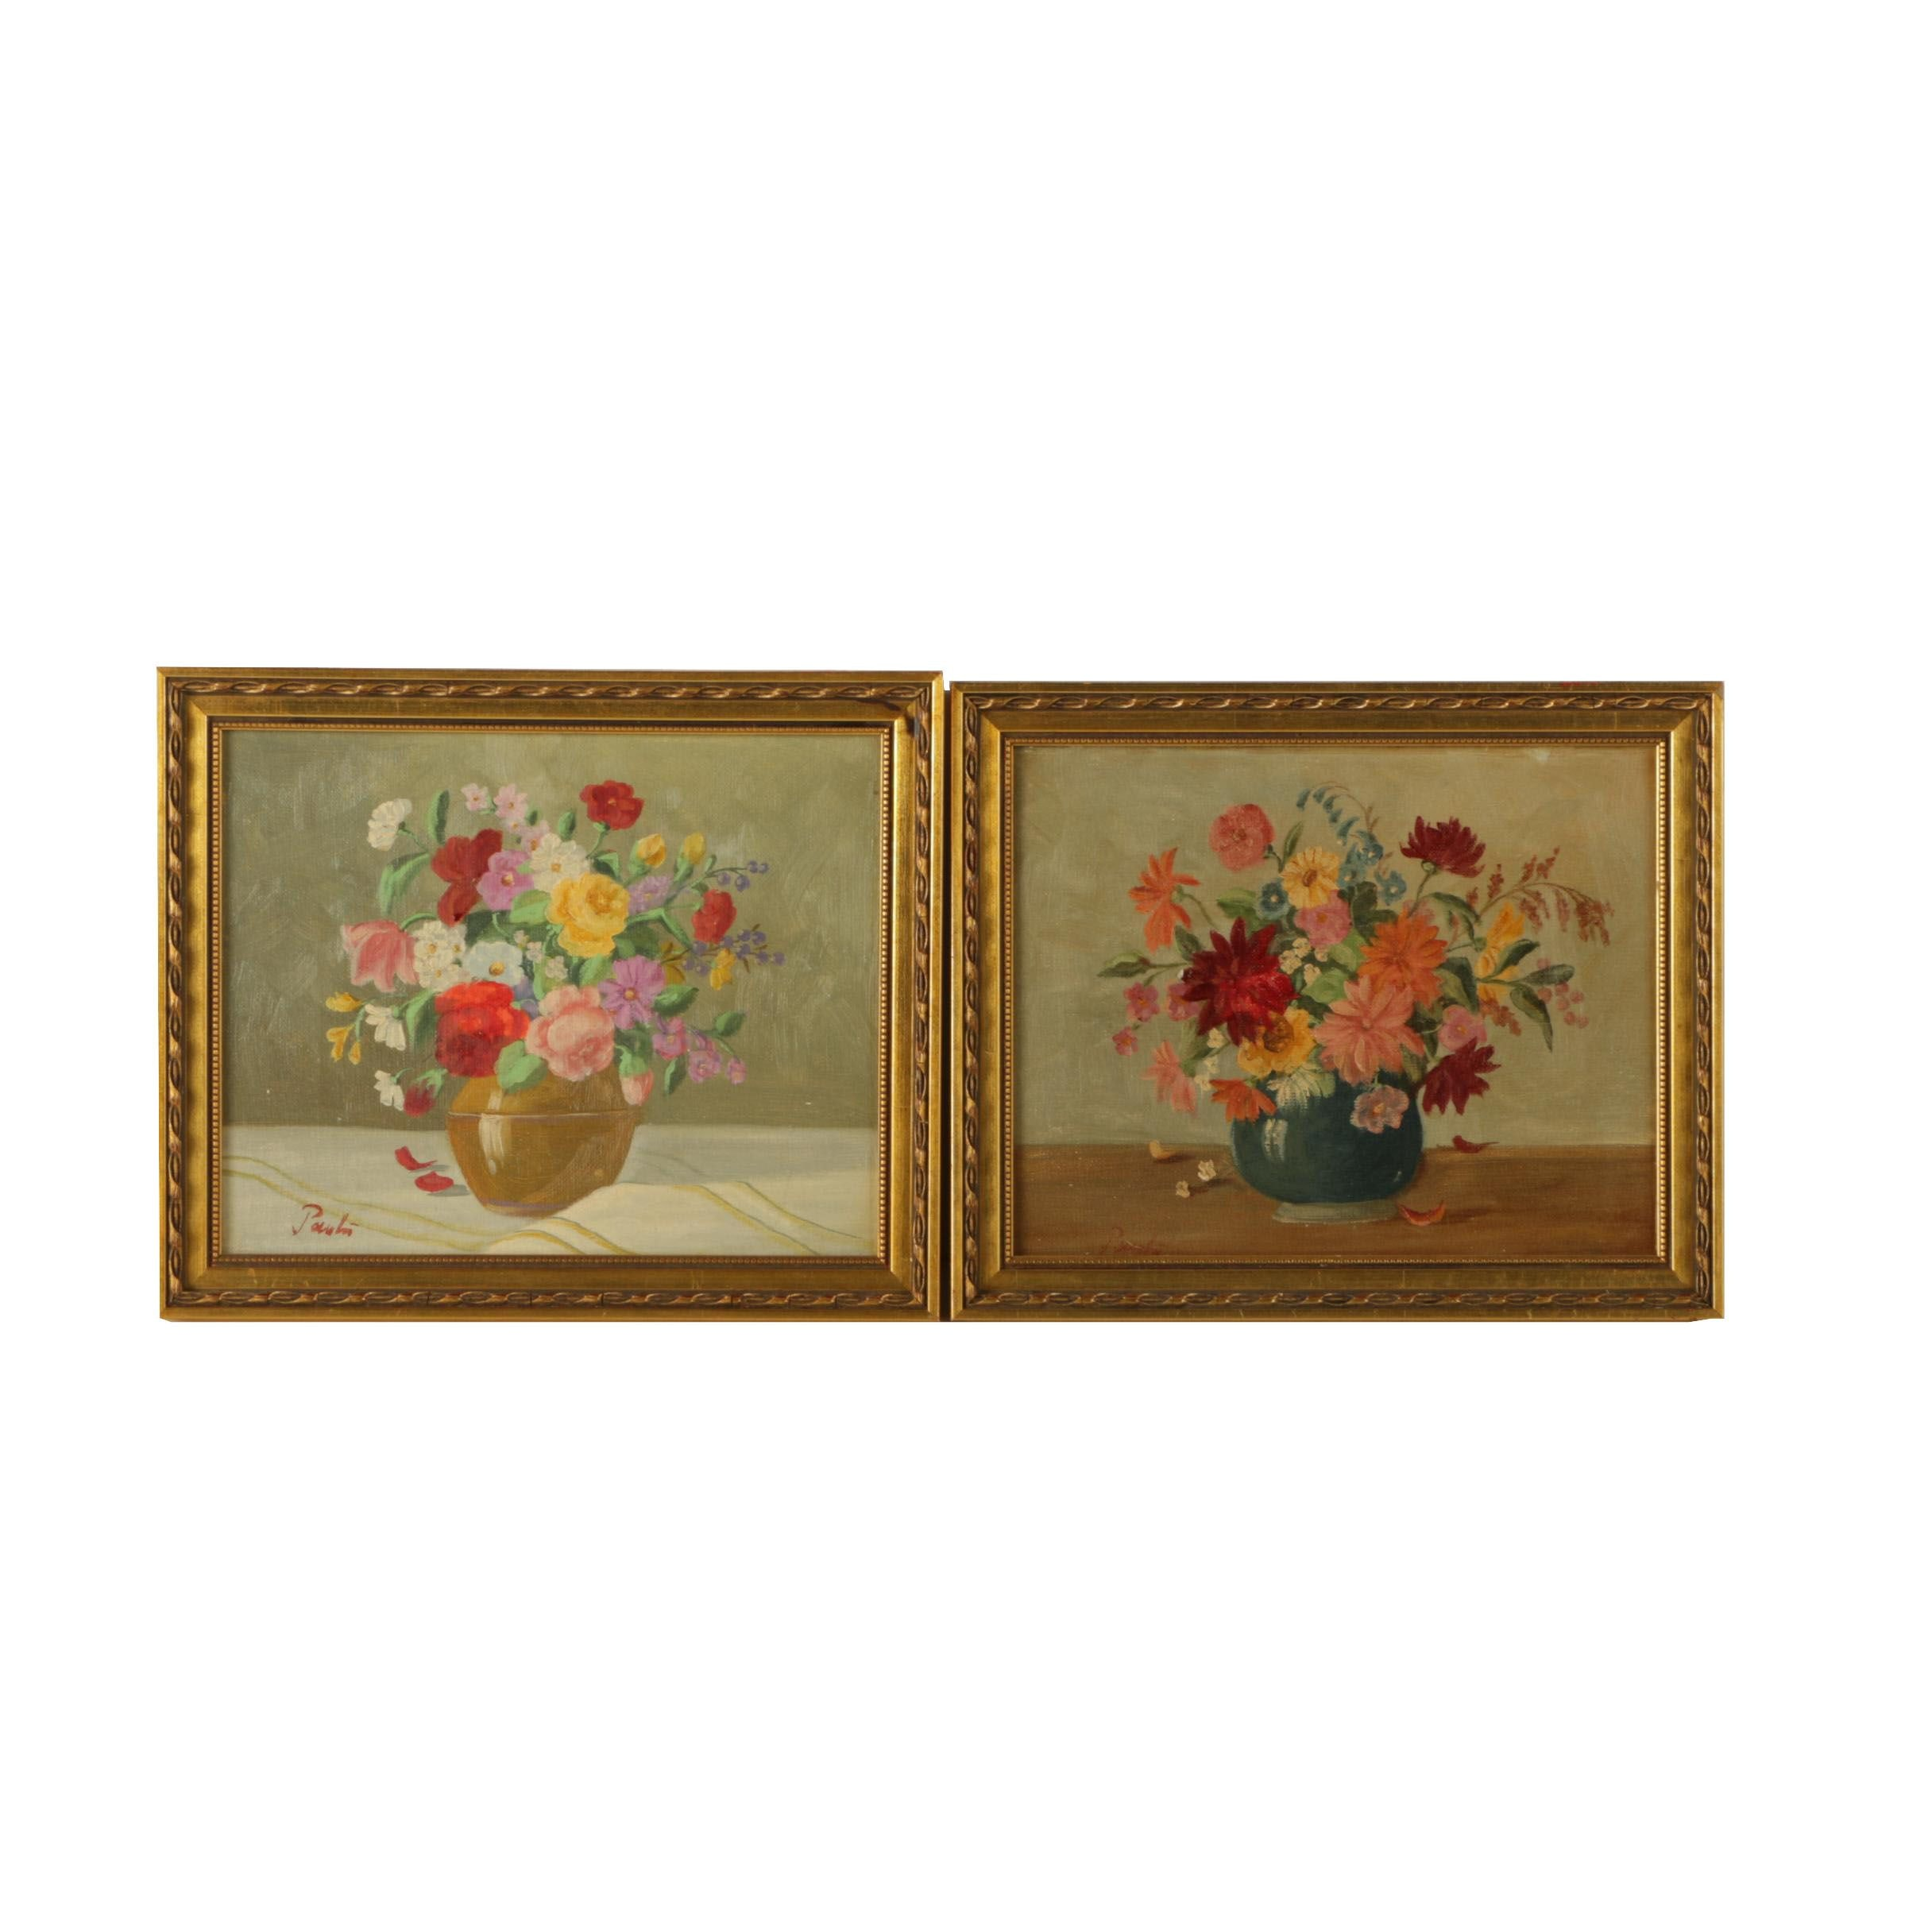 Signed Oil on Canvas Floral Still Life Paintings